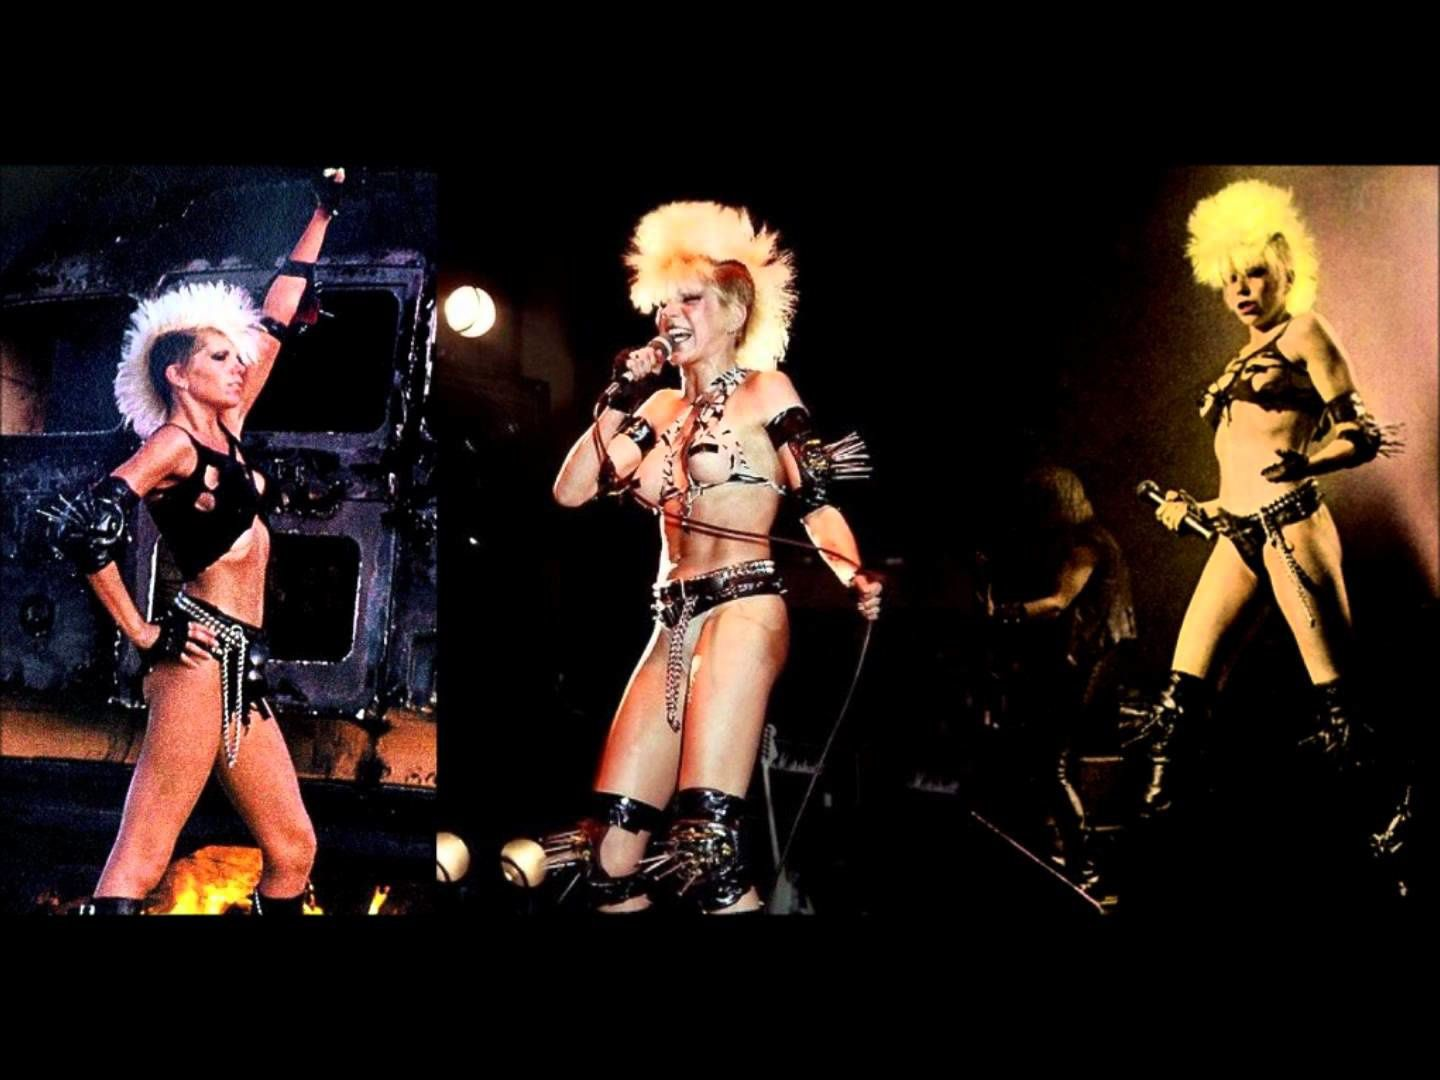 Wendy O. Williams on stage with the Williams' trademark Mohawk haircut